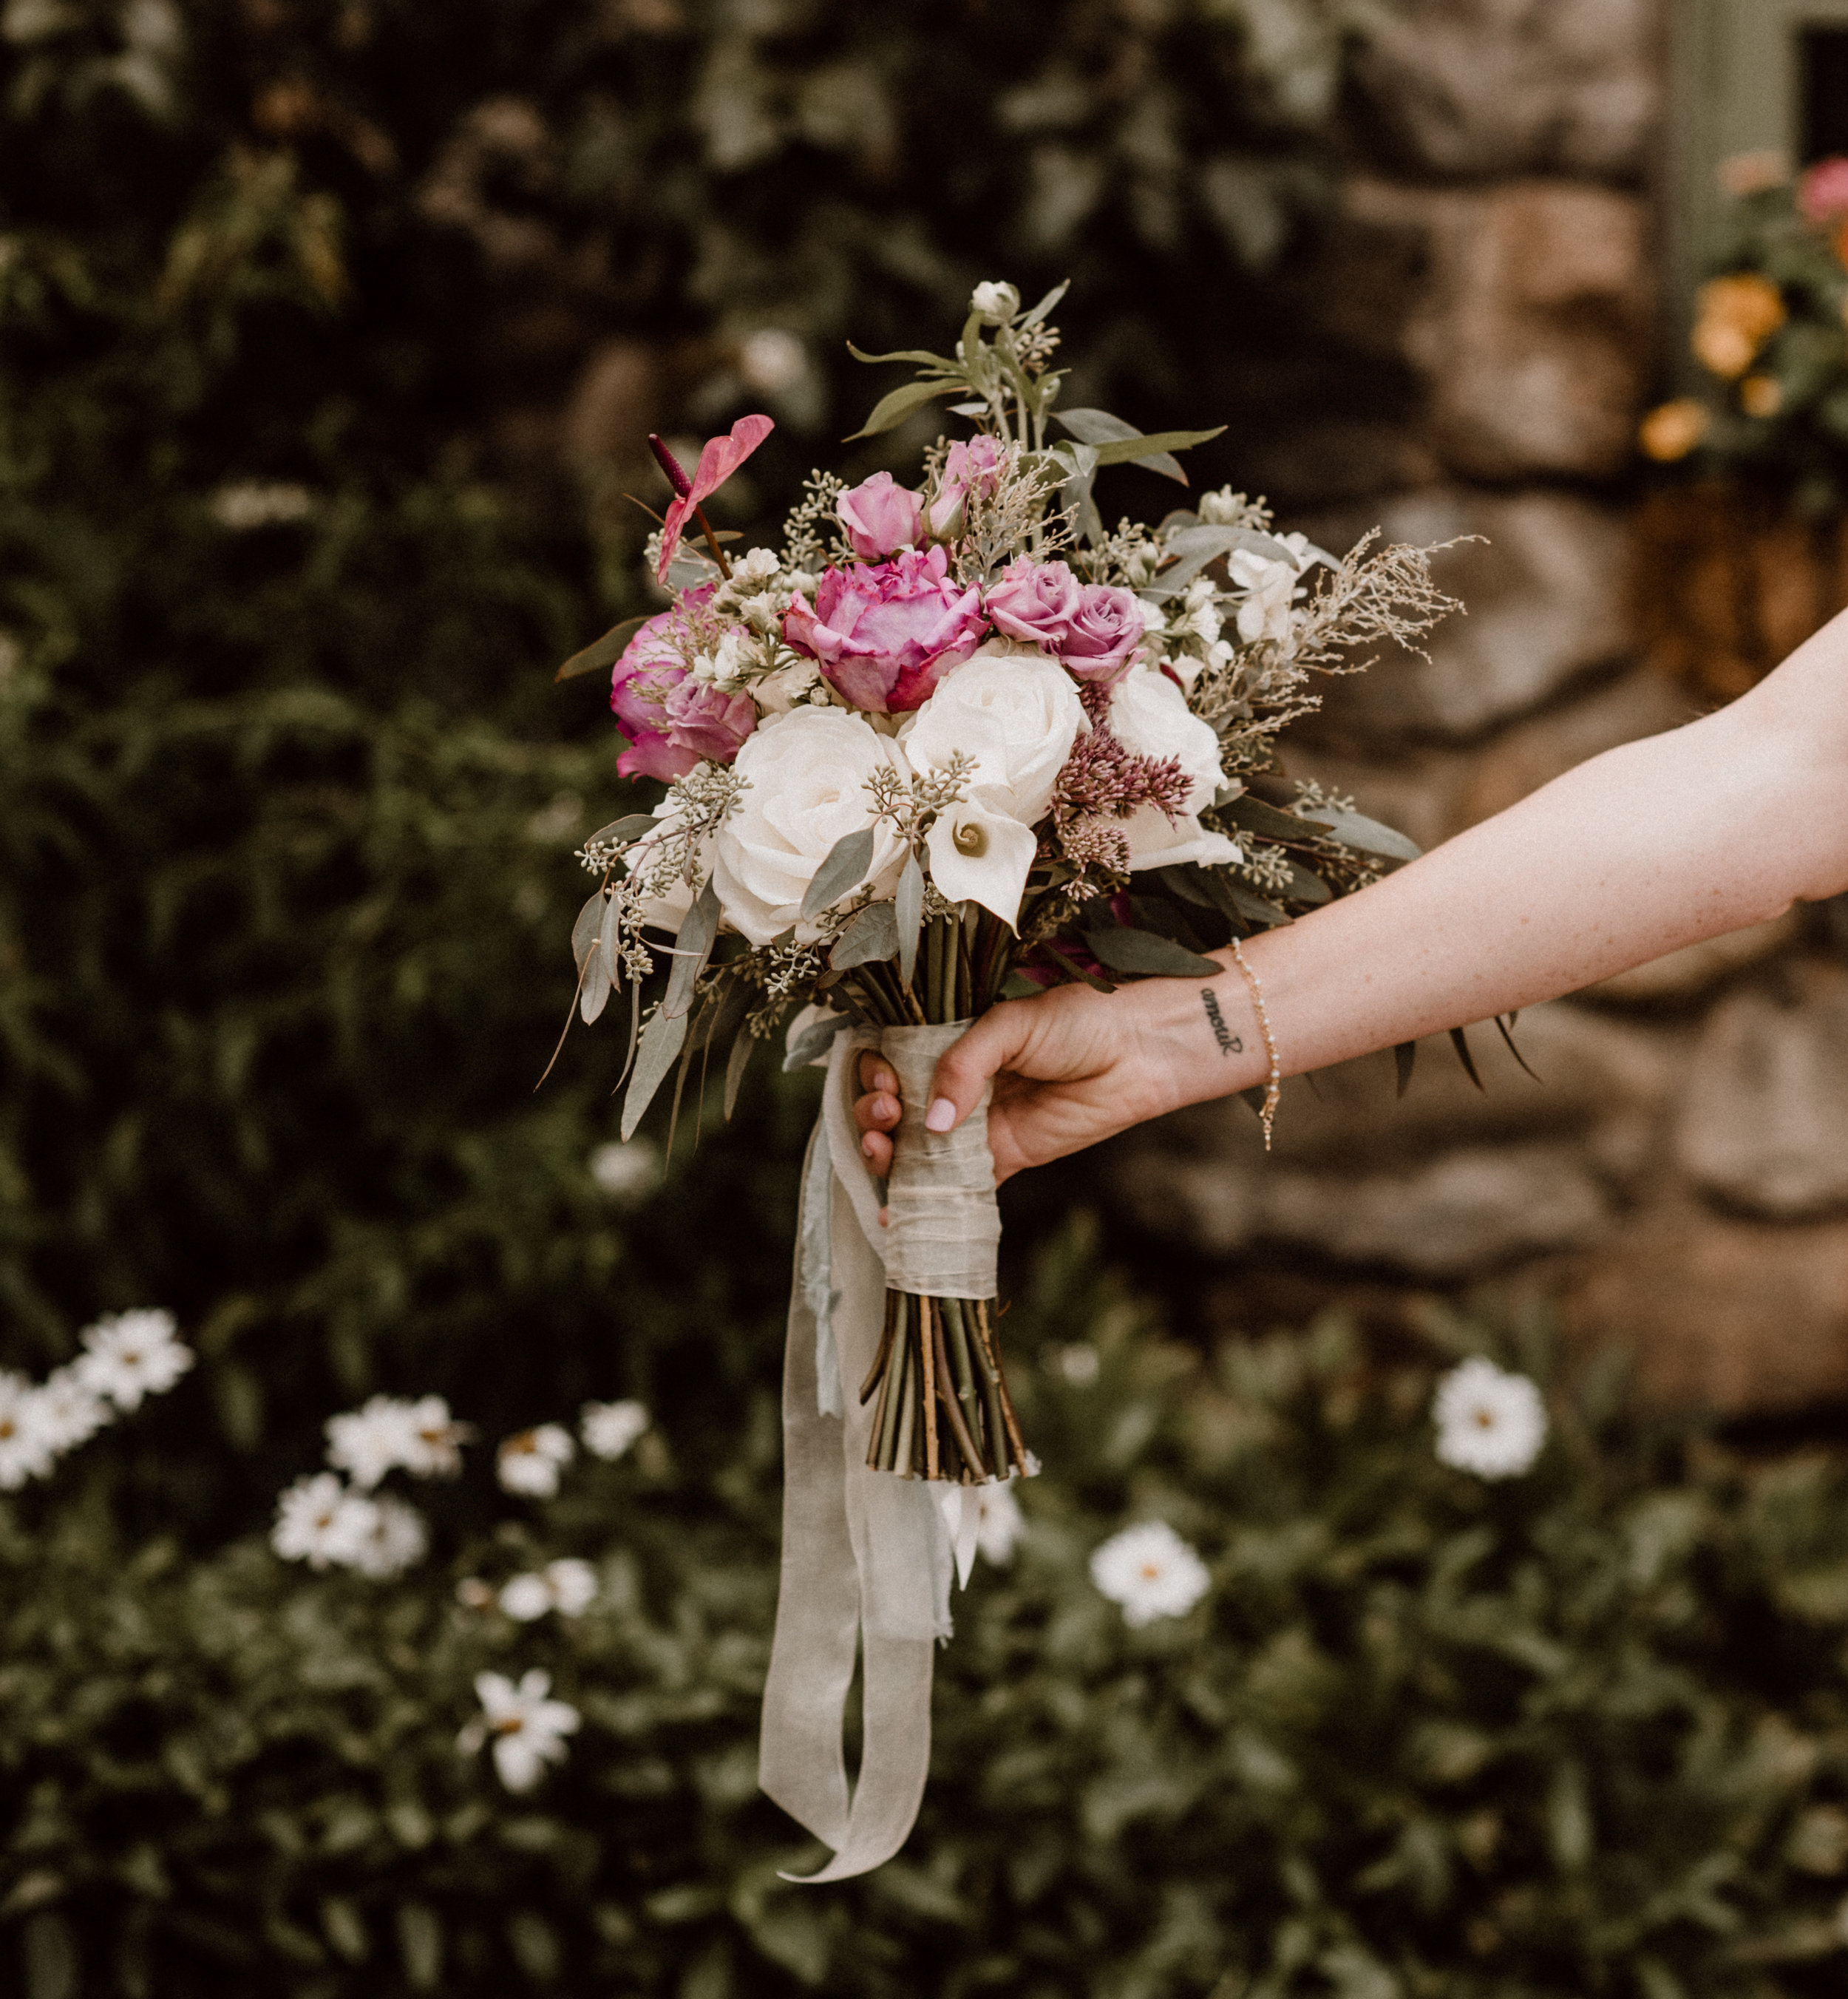 Side view of bouquet  photo by @emilyteresaphotography